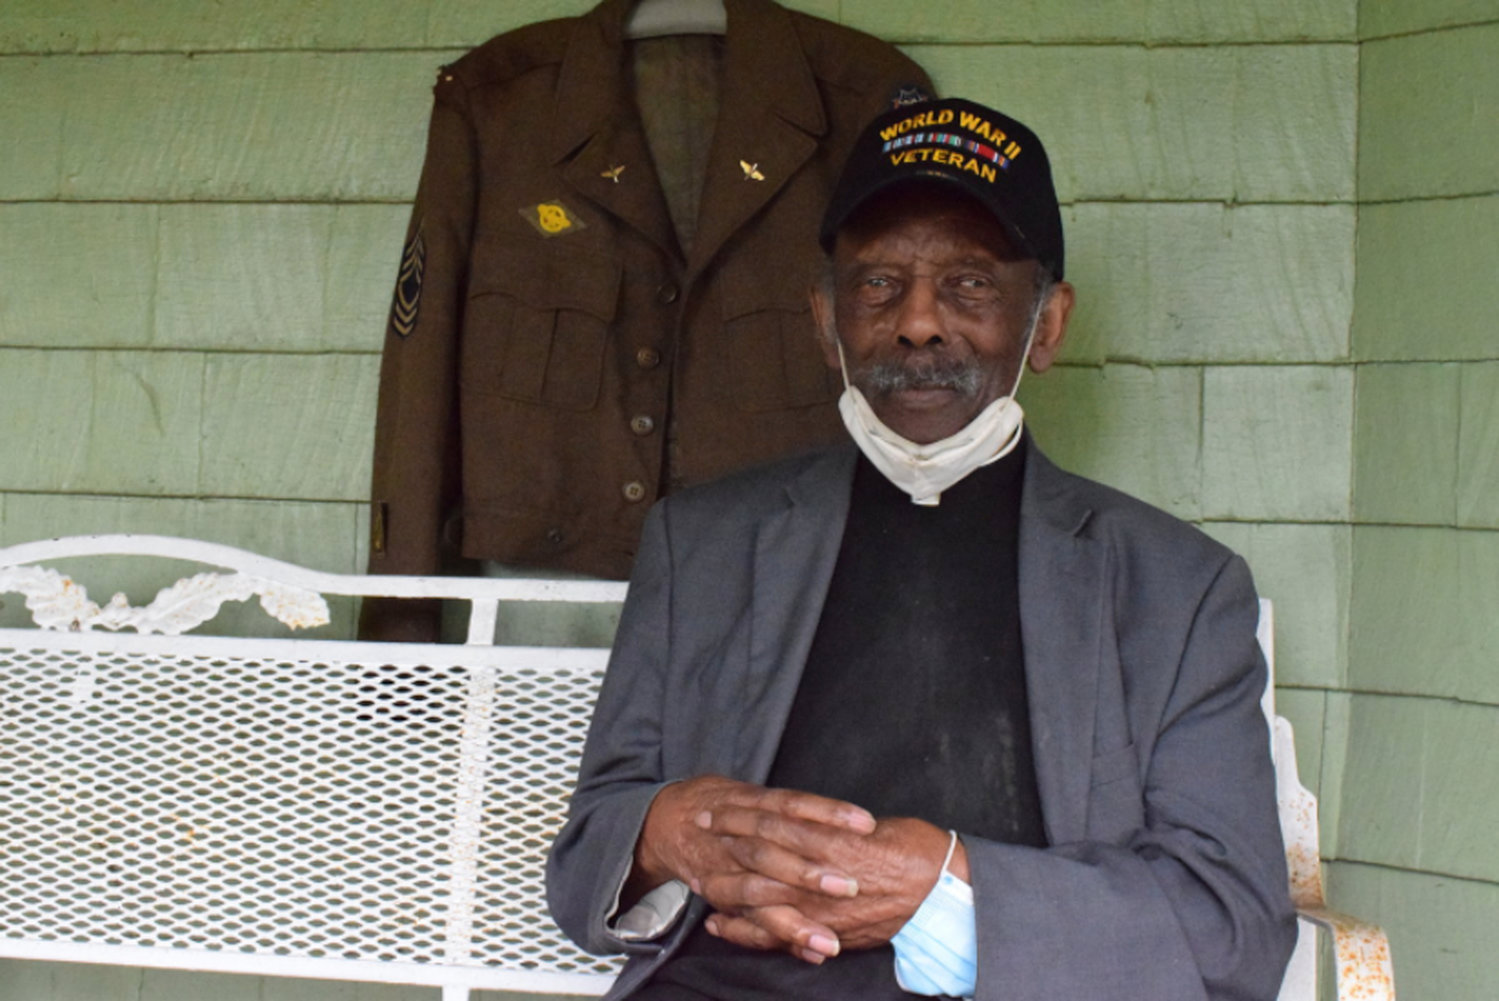 Members of the Freeport and East Meadow communities are raising money to fund a health care aid for 97-year old World War II veteran Rev. Eugene Purvis and his wife Dr. Sylvia Purvis.